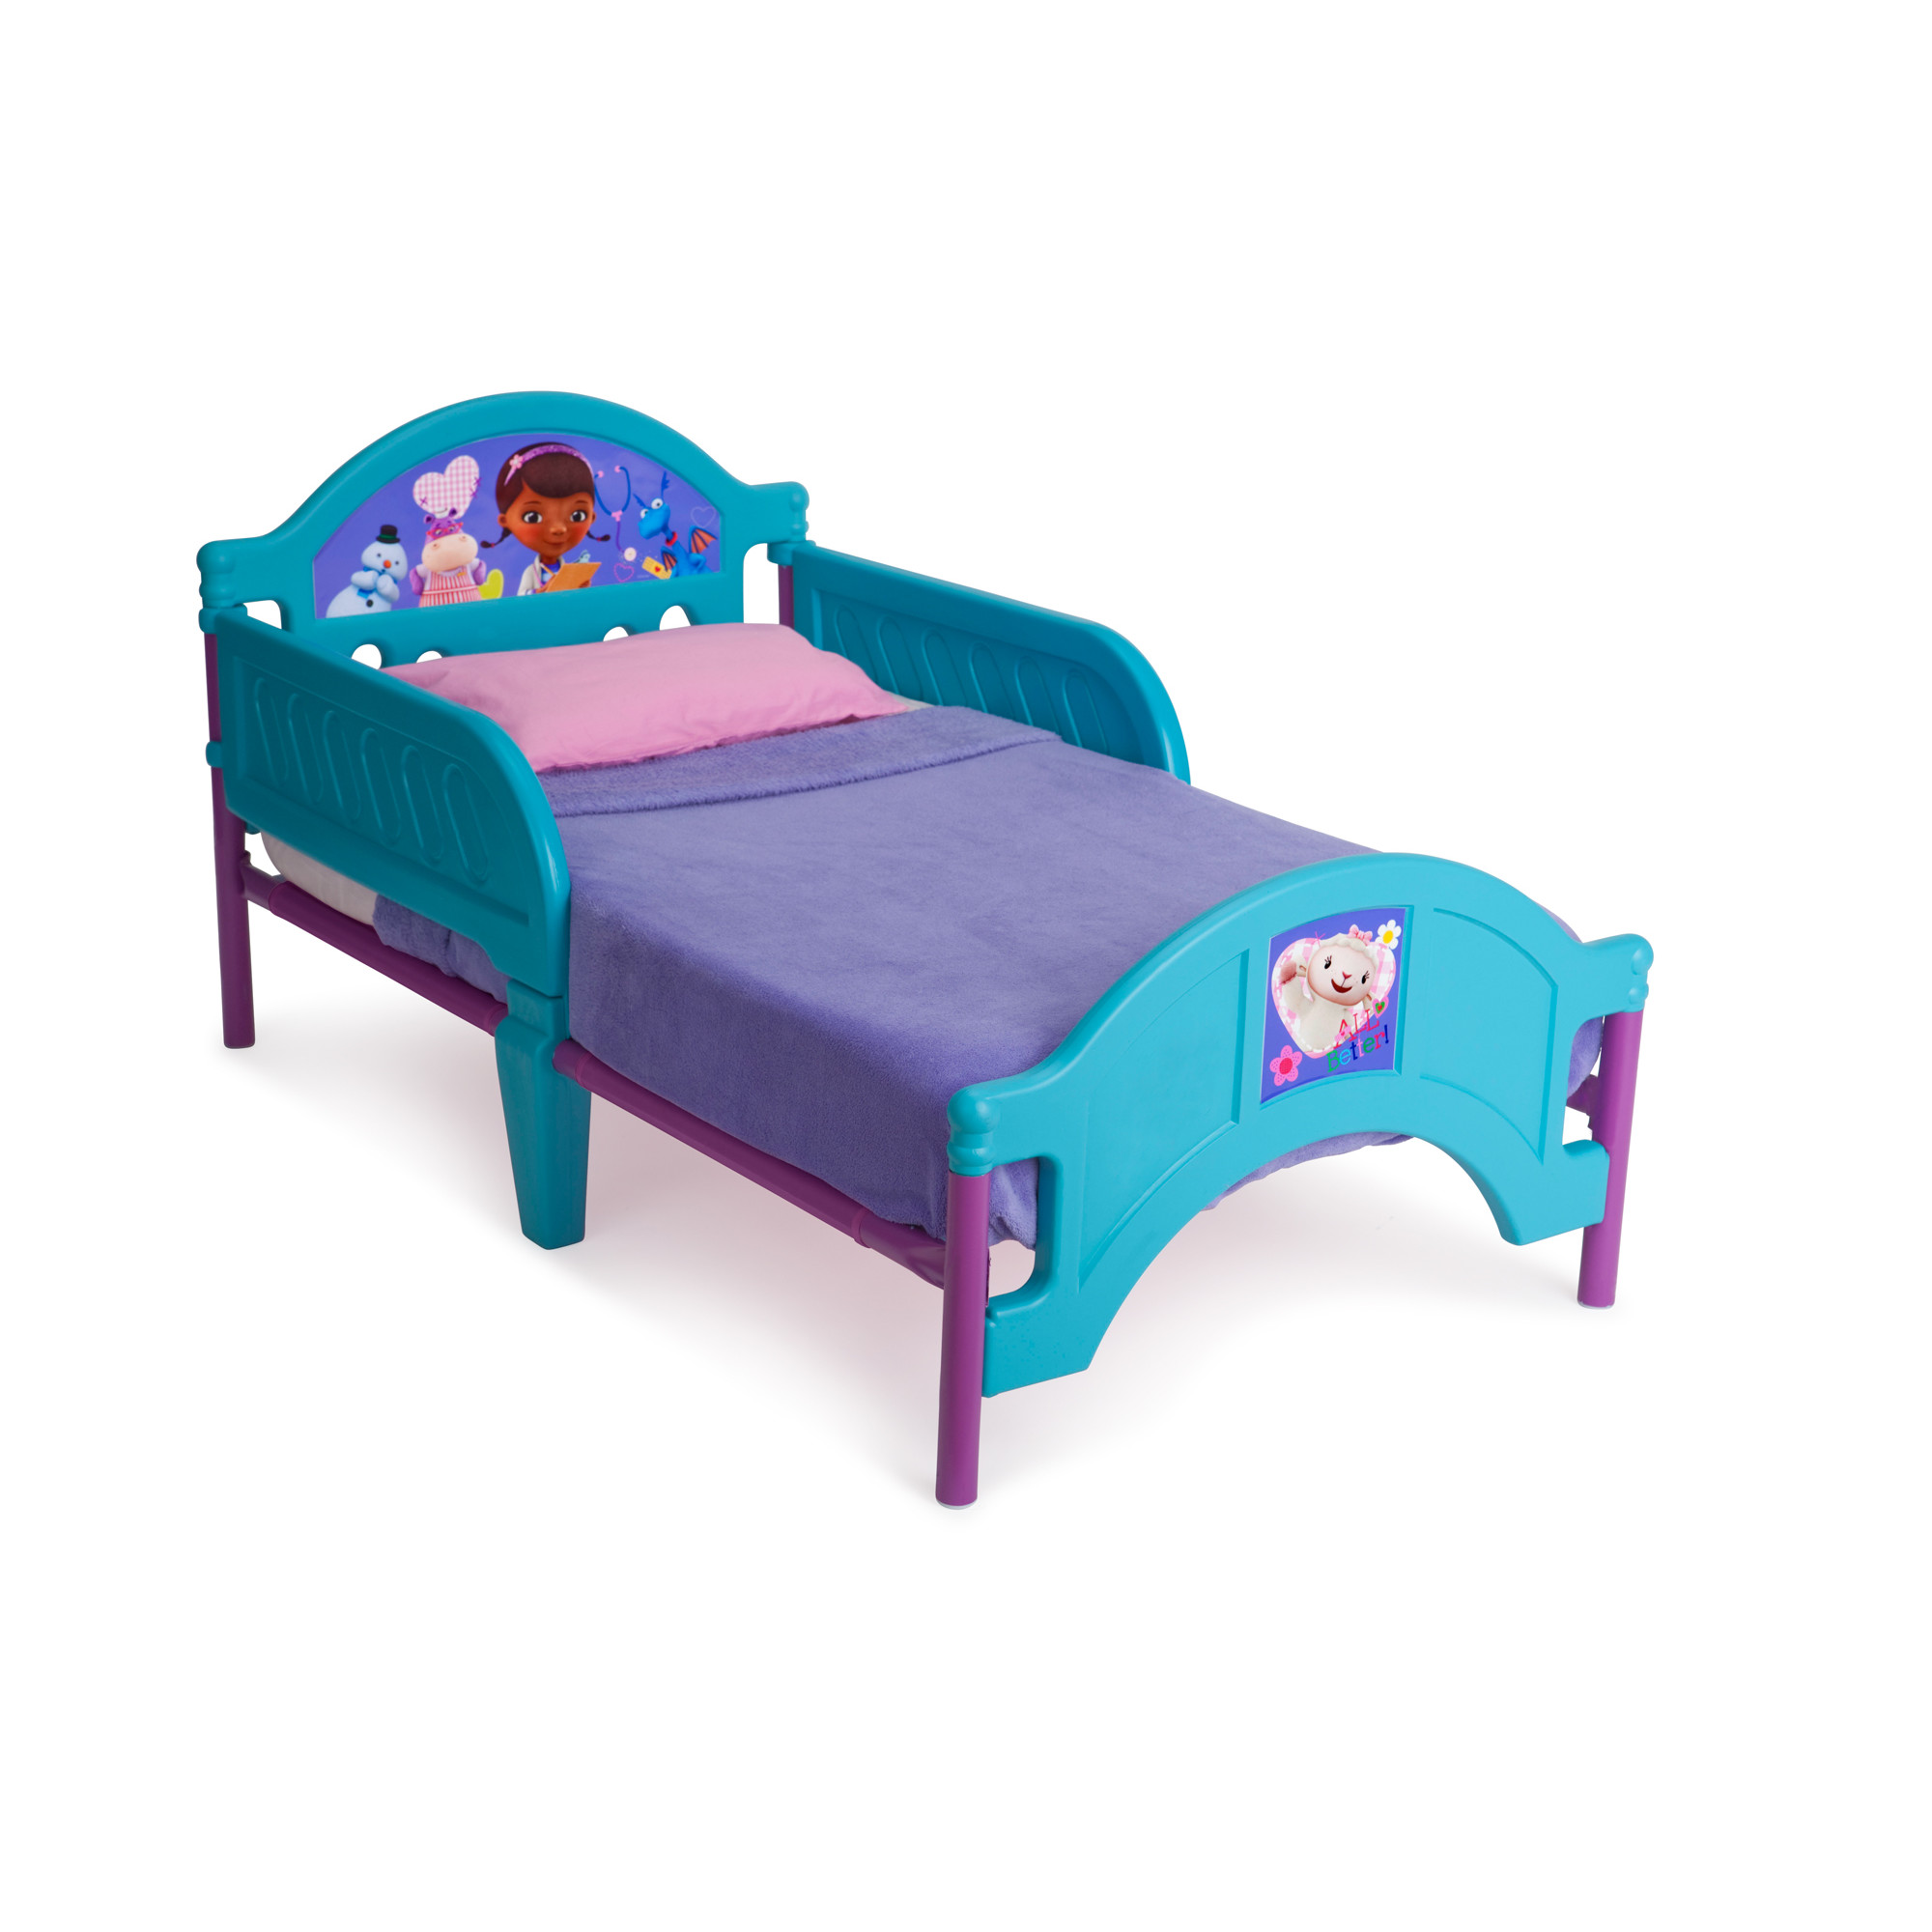 delta cars toddler bed instructions photo - 5